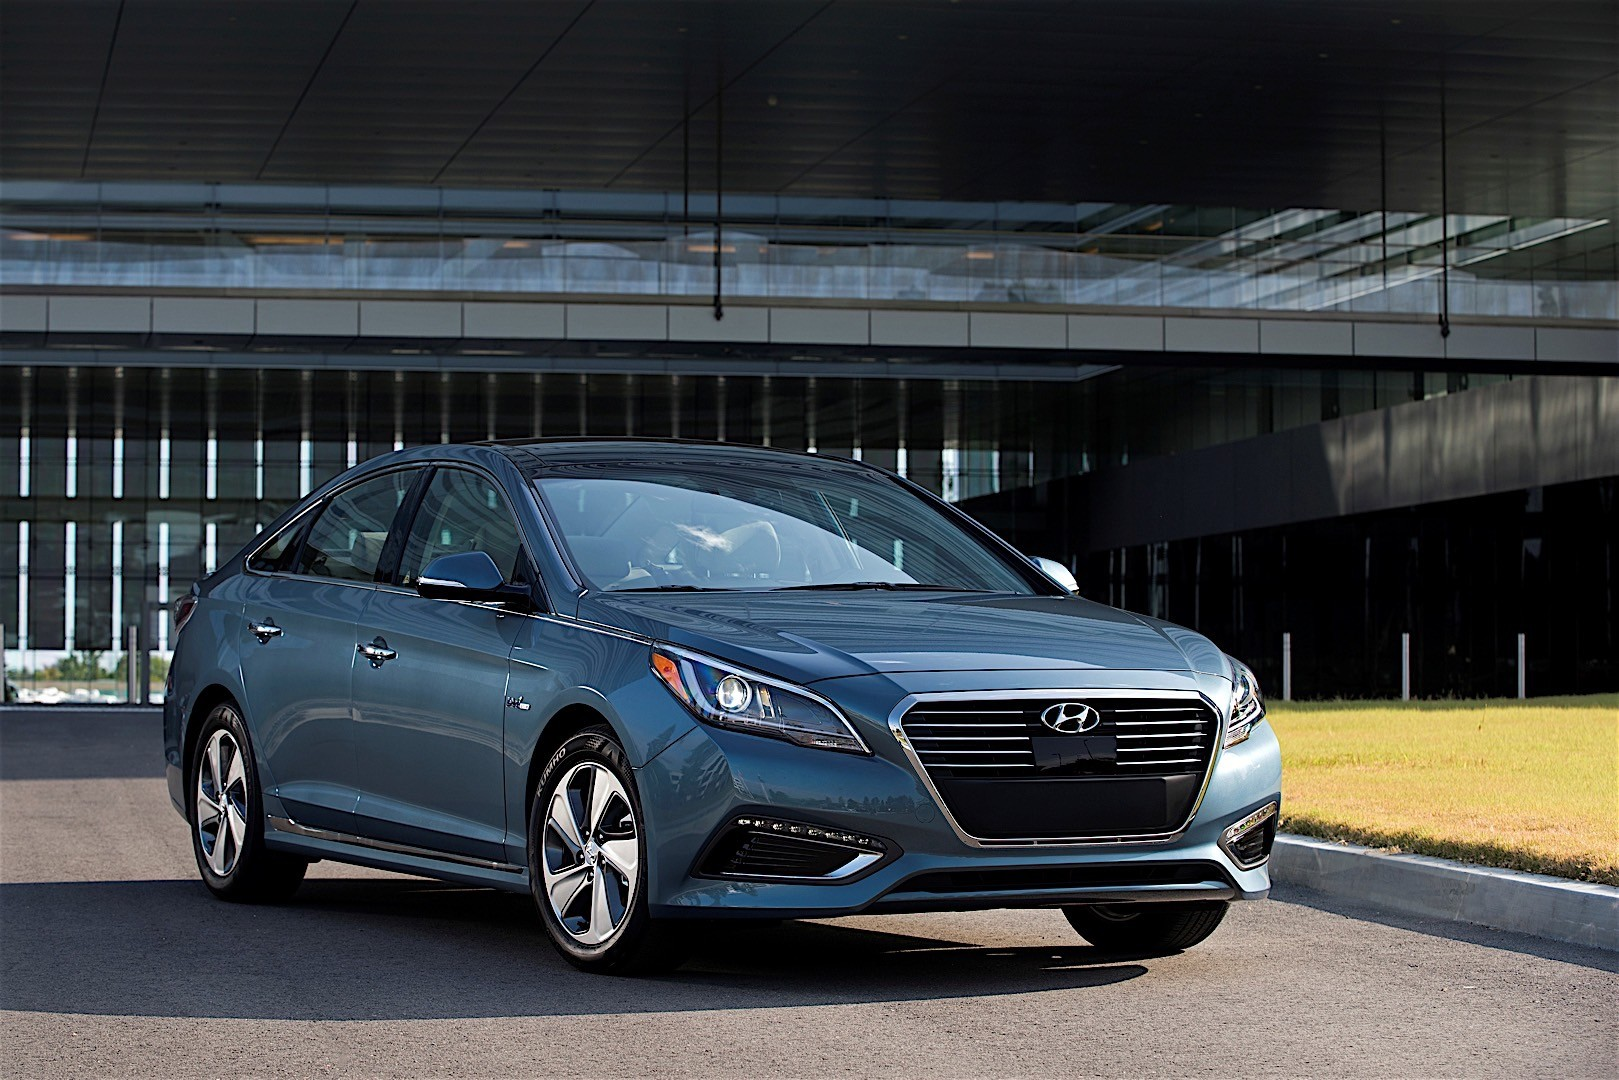 plug h news to car nominee buy sonata green and hyundai in reports best hybrid